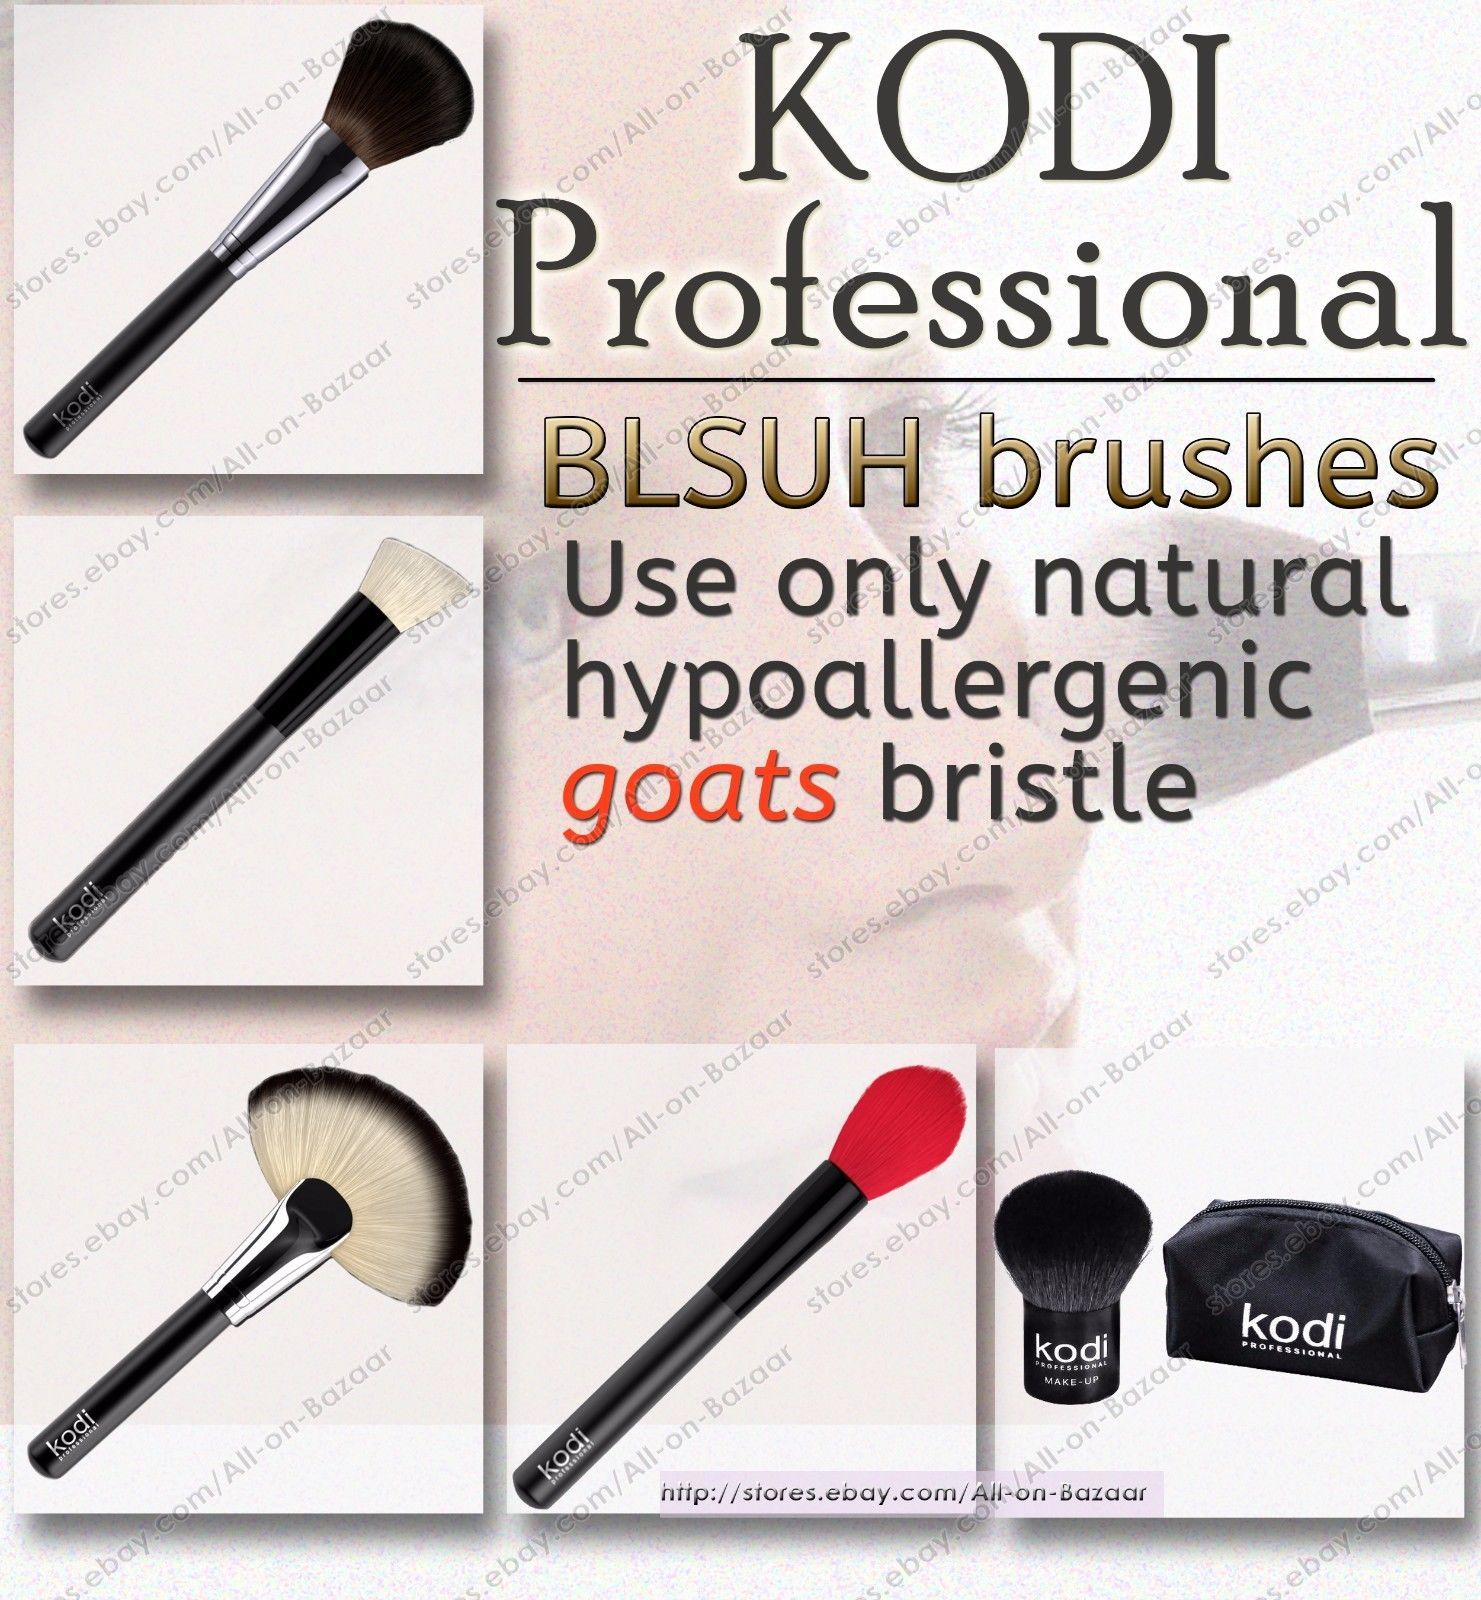 Primary image for KODI PROFESSIONAL Make-up BRUSHES FOR Blush brushes